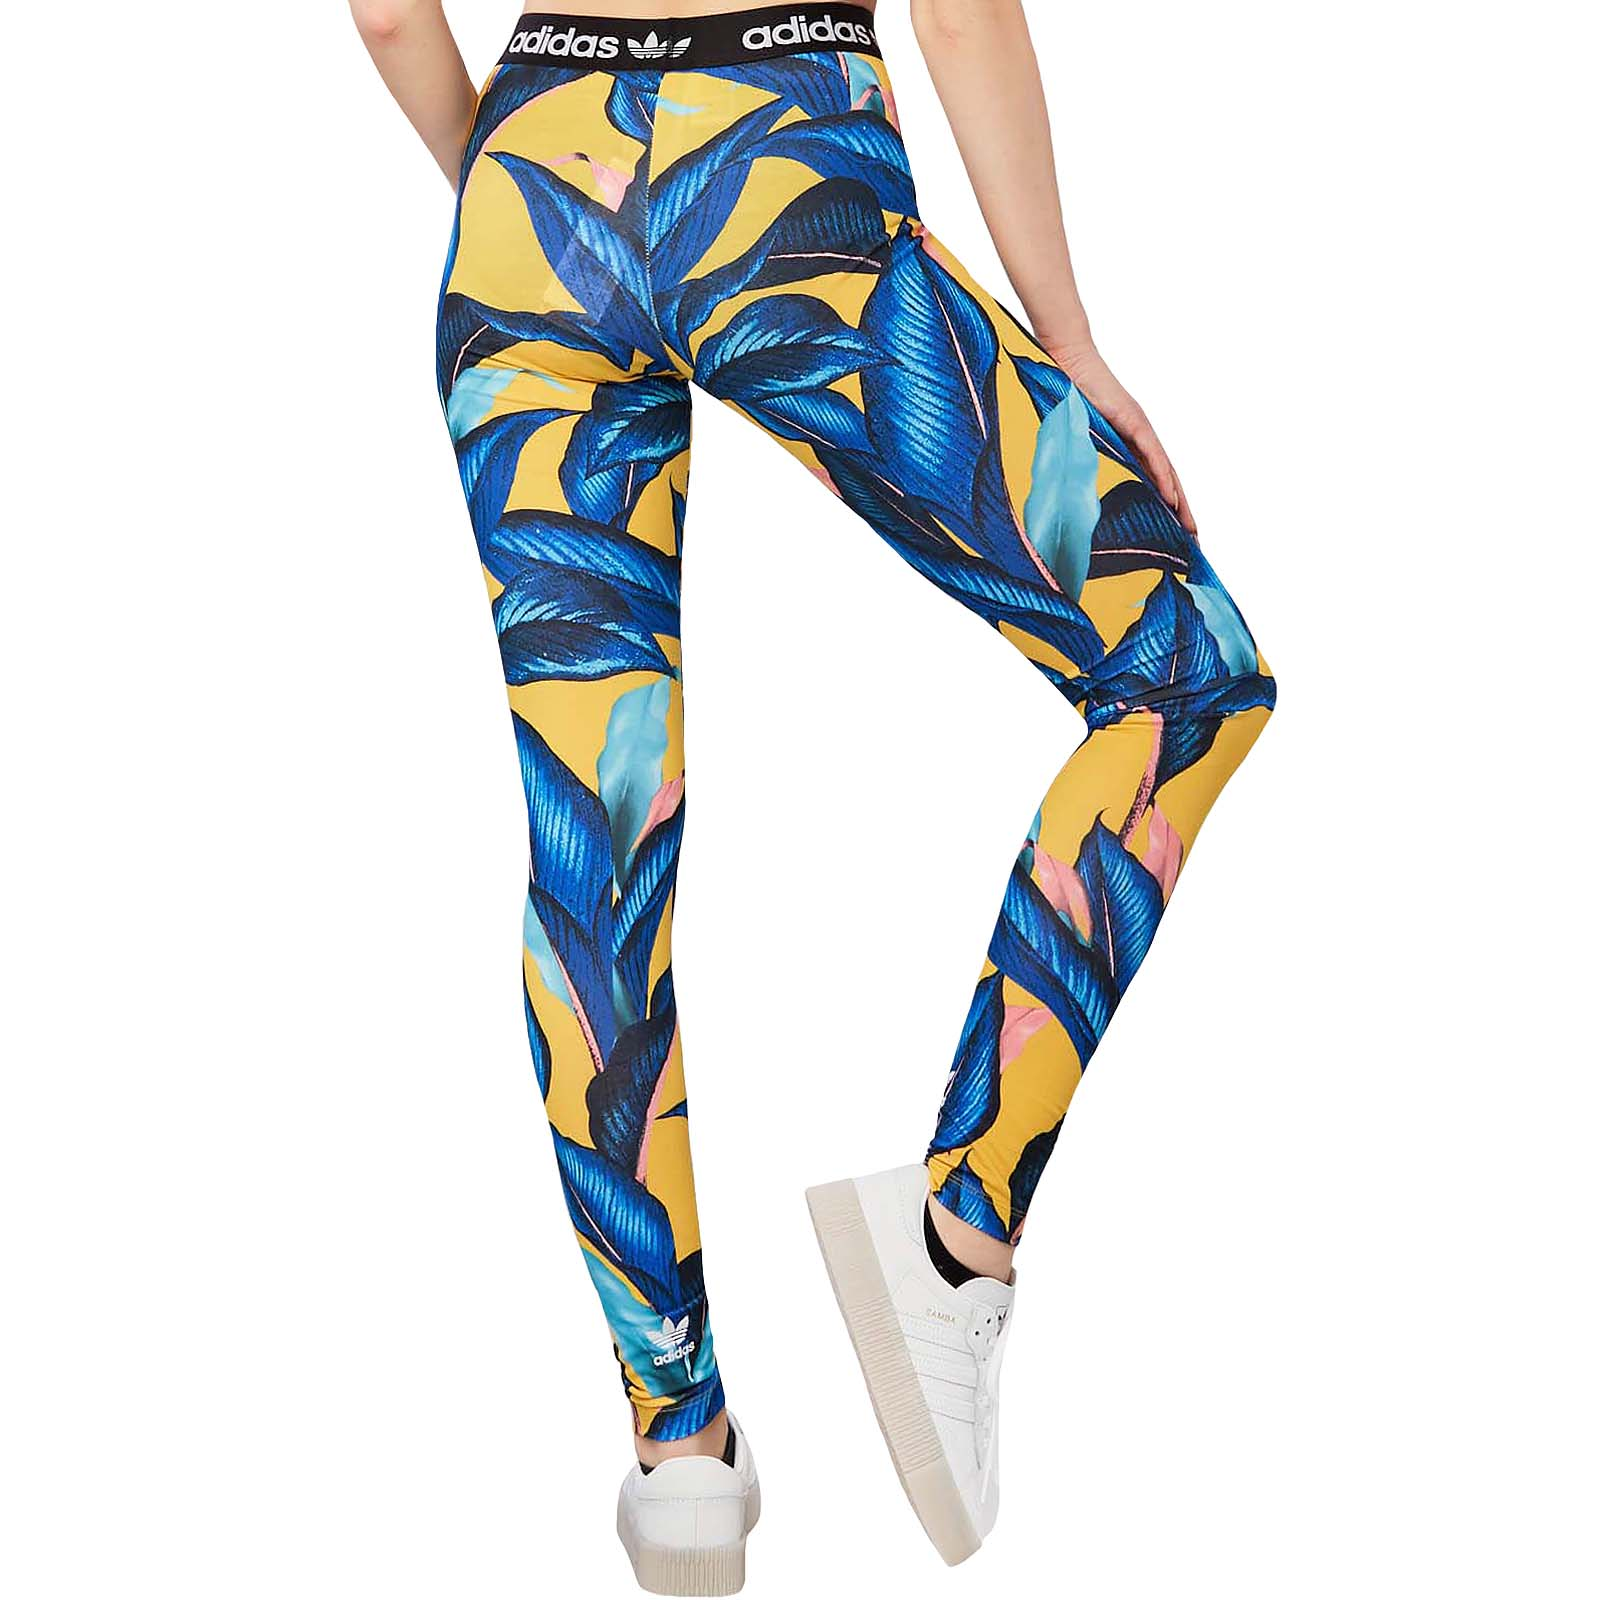 adidas Originals Women's Farm Leggings, BlueYellow, XS